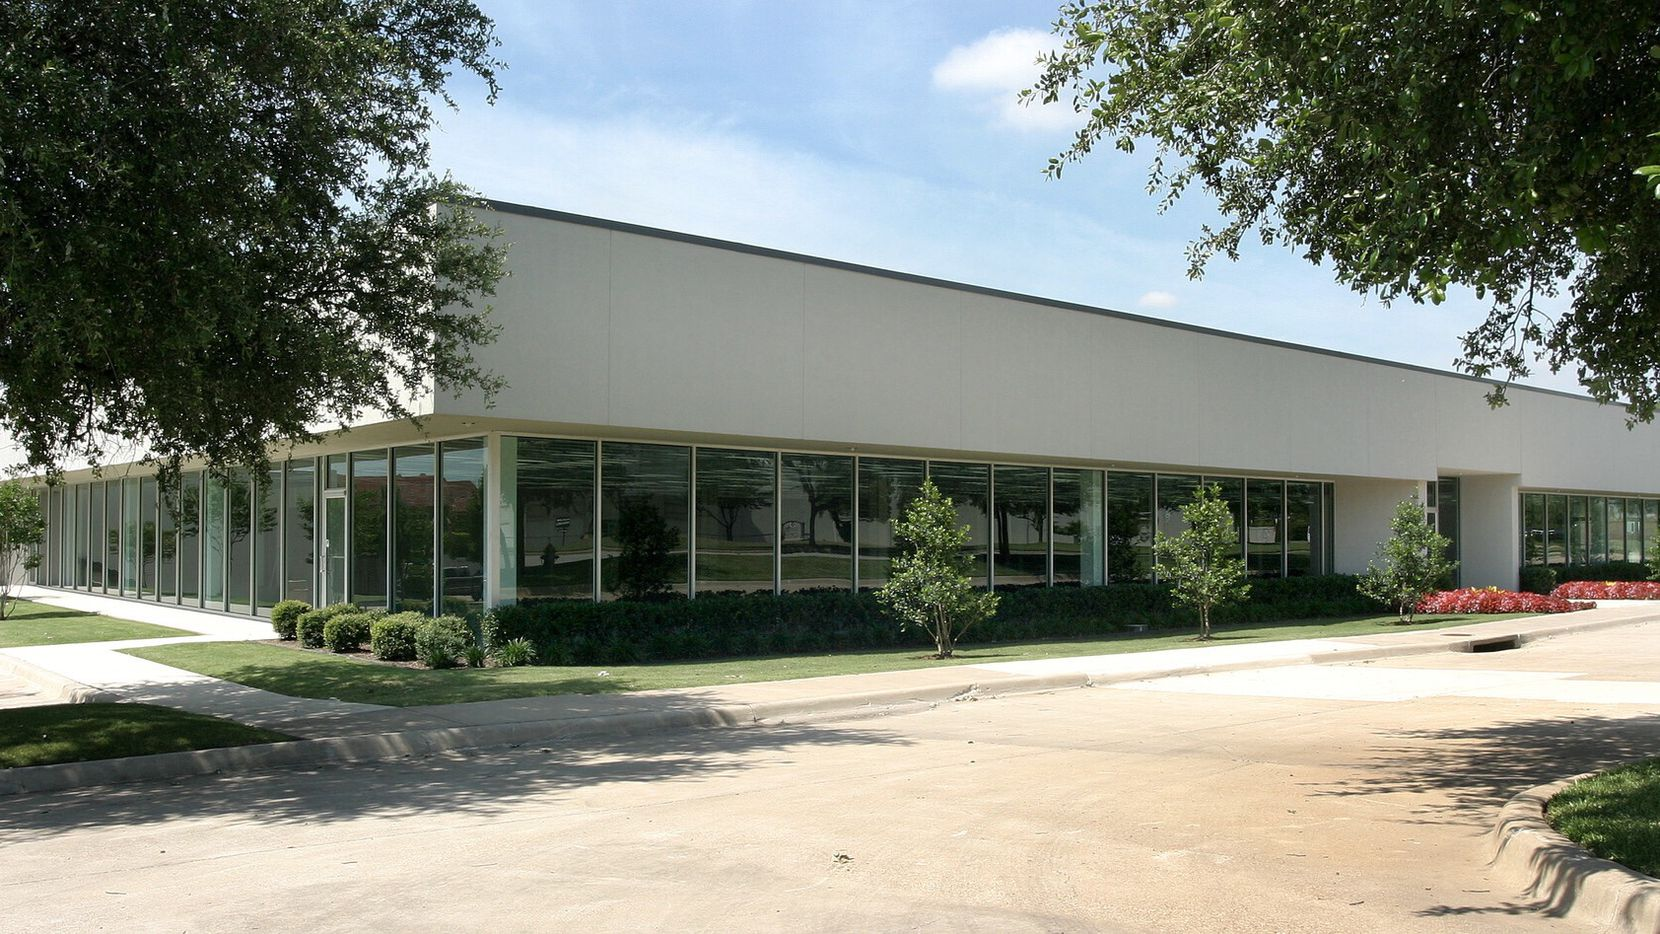 The office building at 1320 West Walnut Hill in Irving will be converted into an alternative medical center.